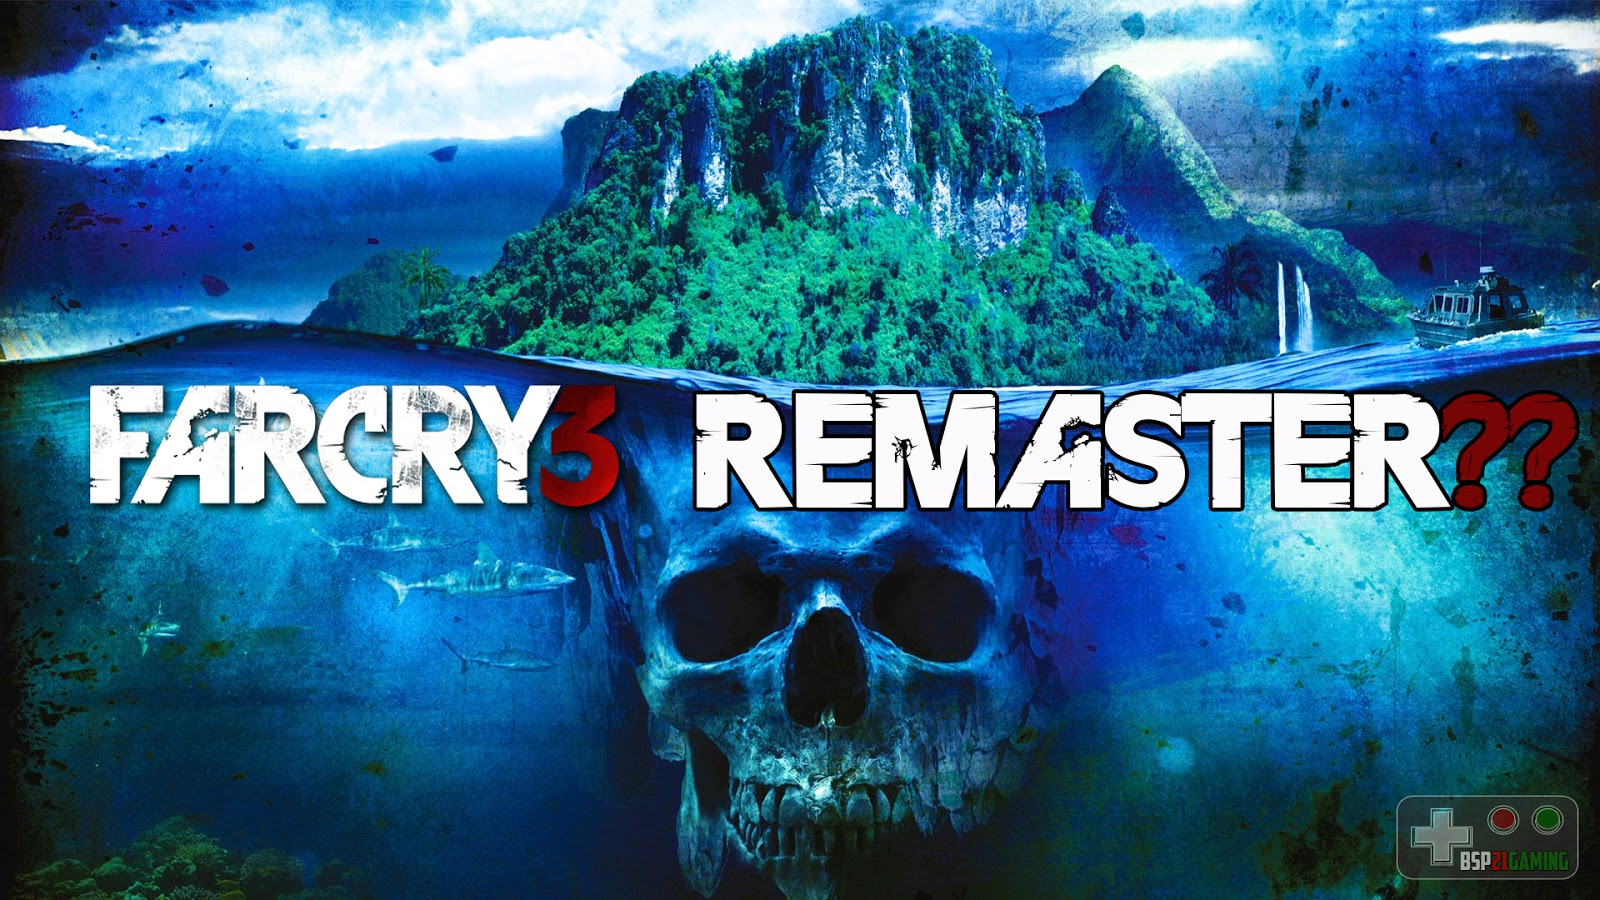 Bsp21gaming Ubisoft Teases Rook Island Poster From Far Cry 3